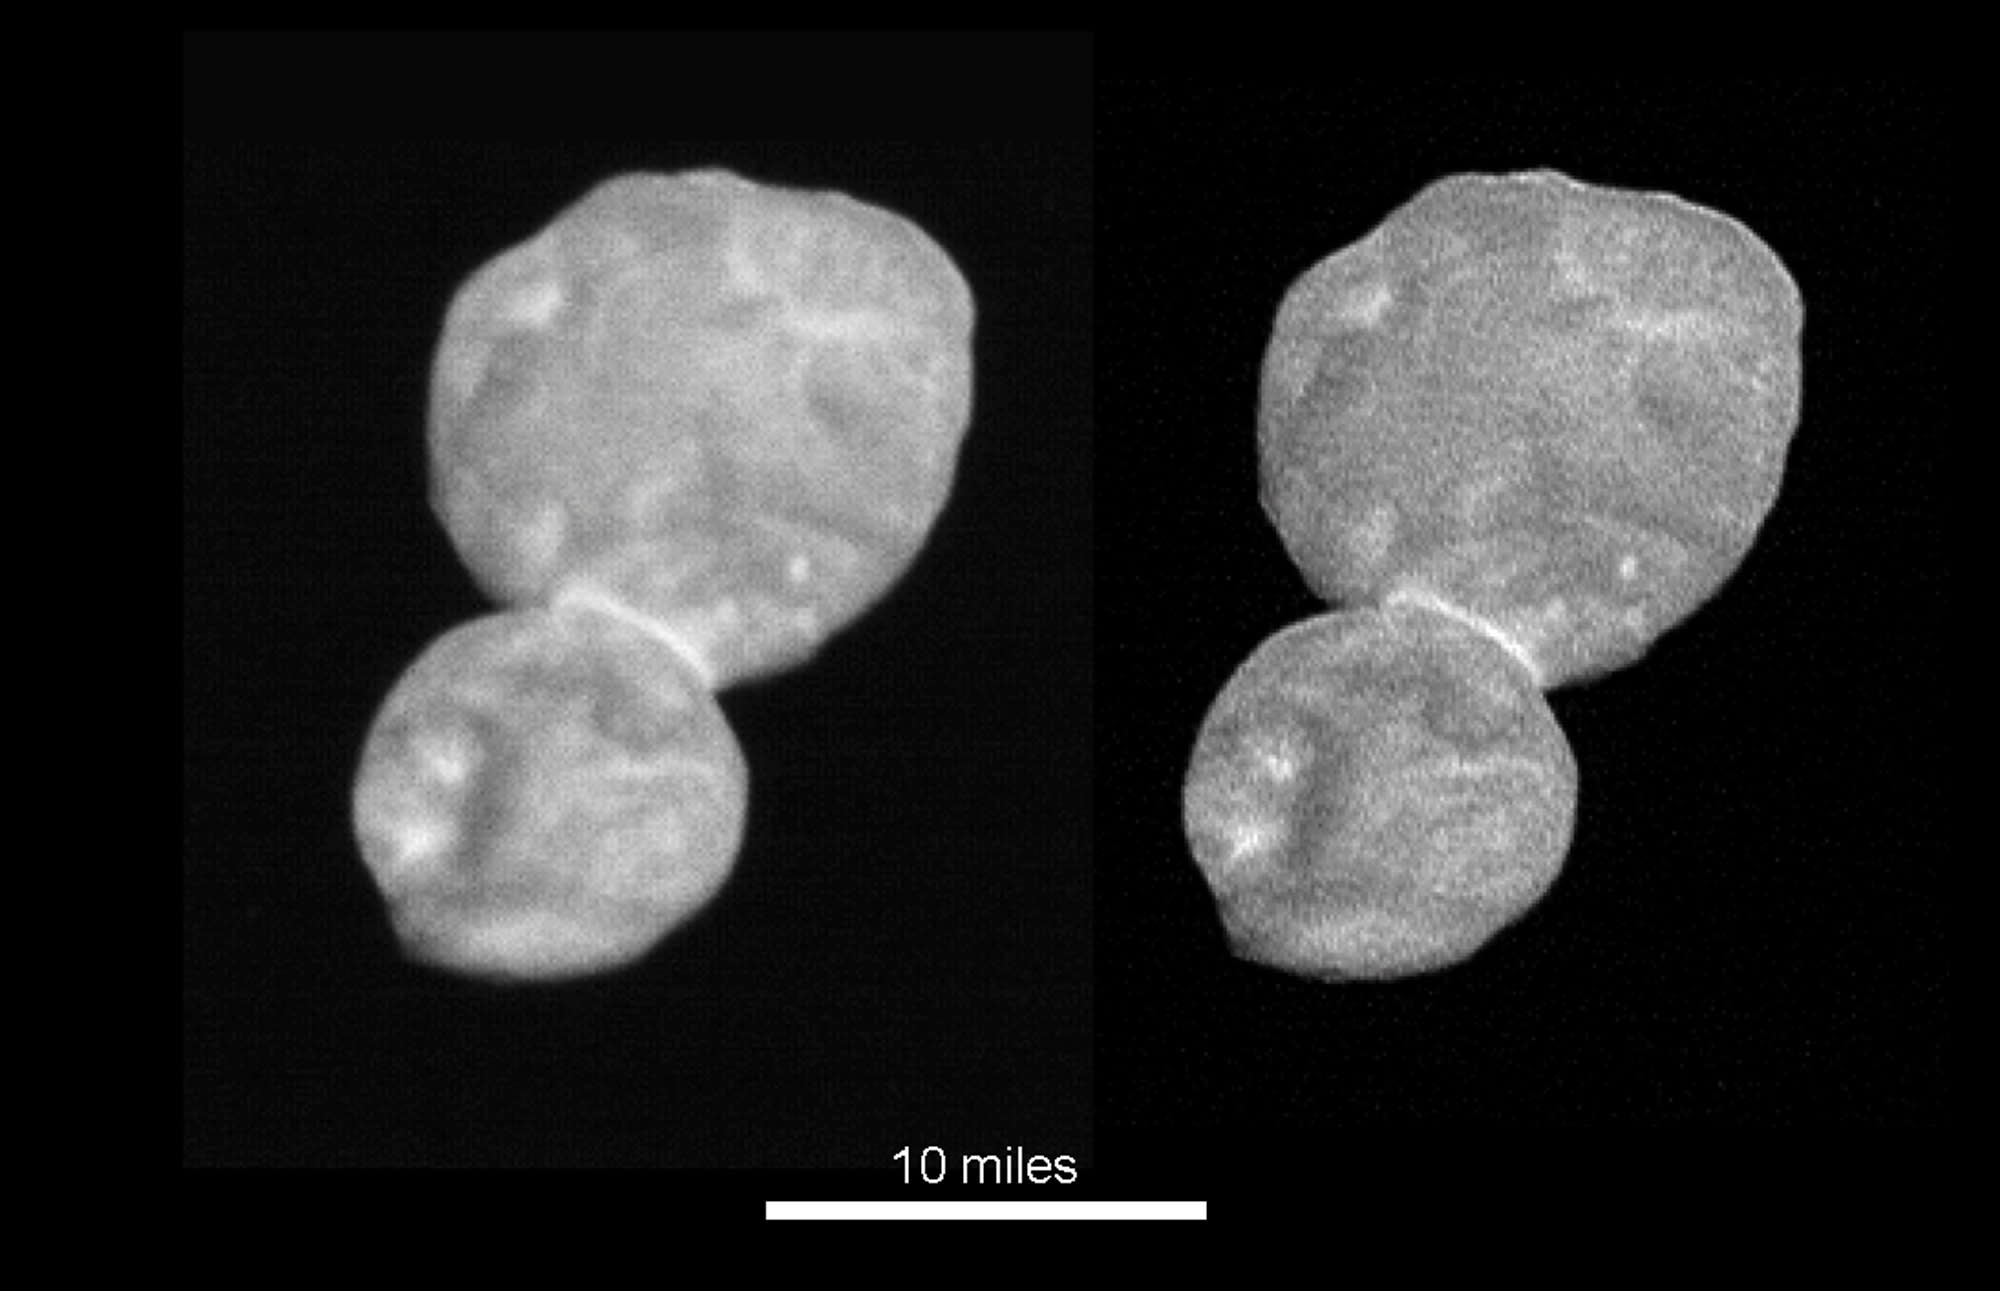 New Horizons probe reveals distant Ultima Thule asteroid looks like a snowman